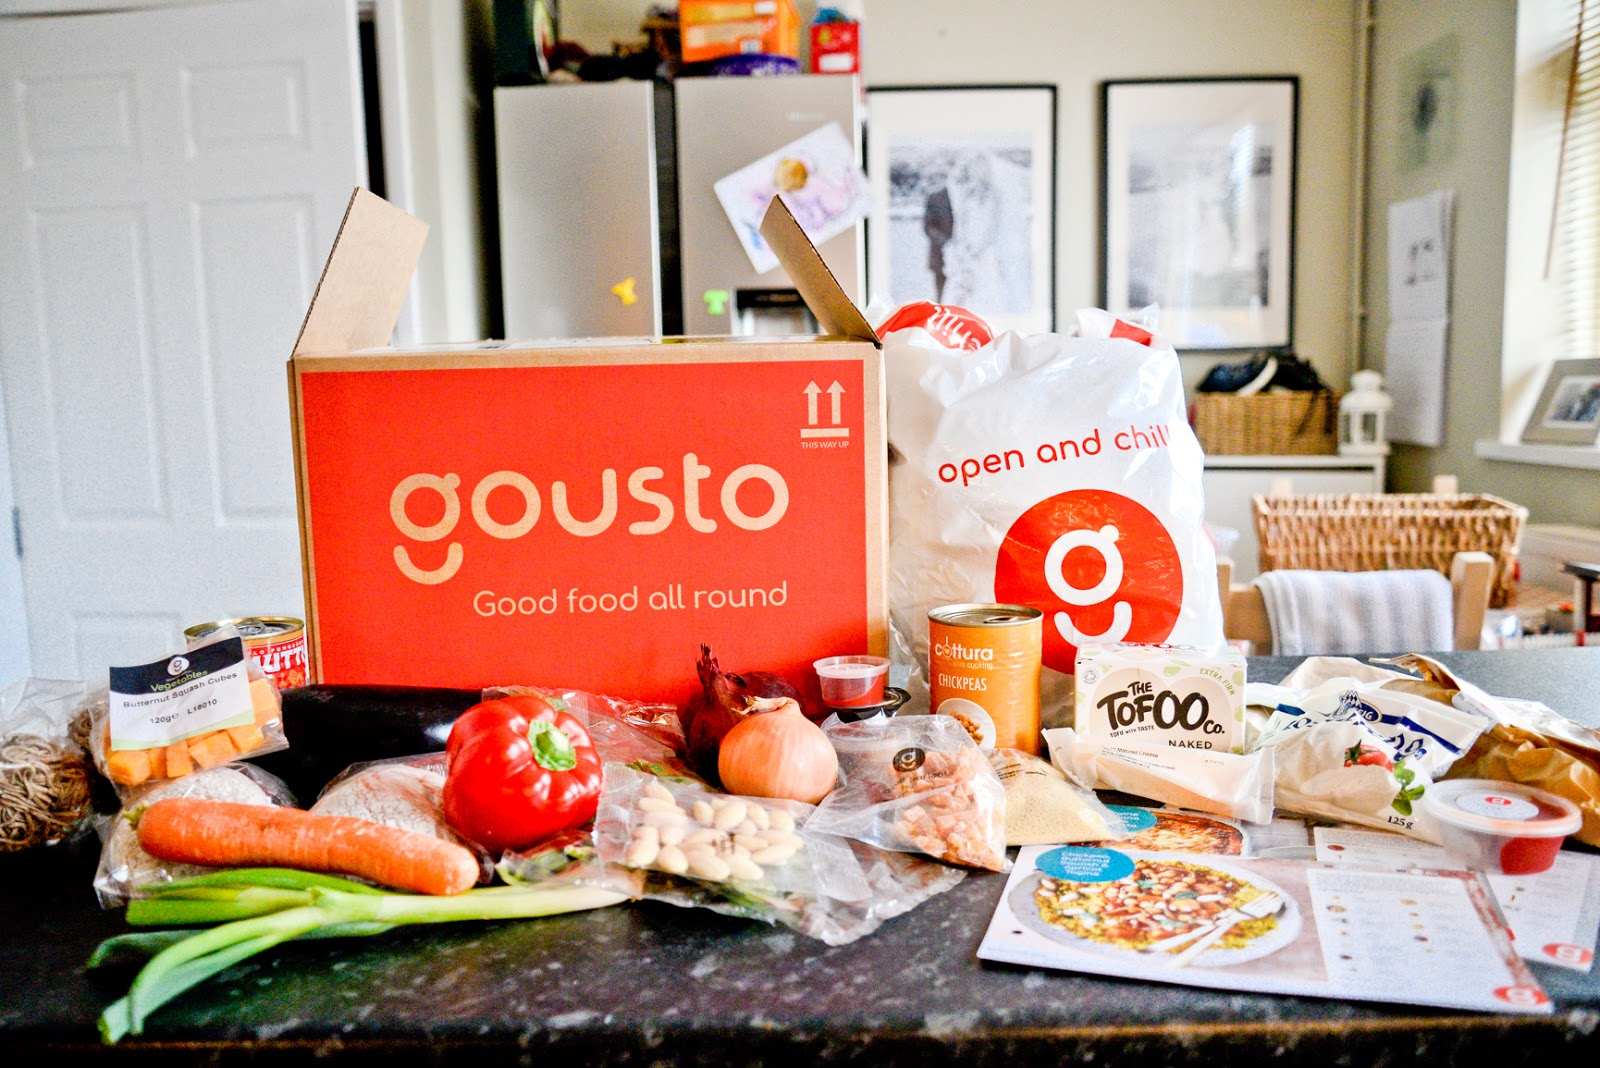 guosto vegetarian meals , gousto, gousto meals, gousto reviews,